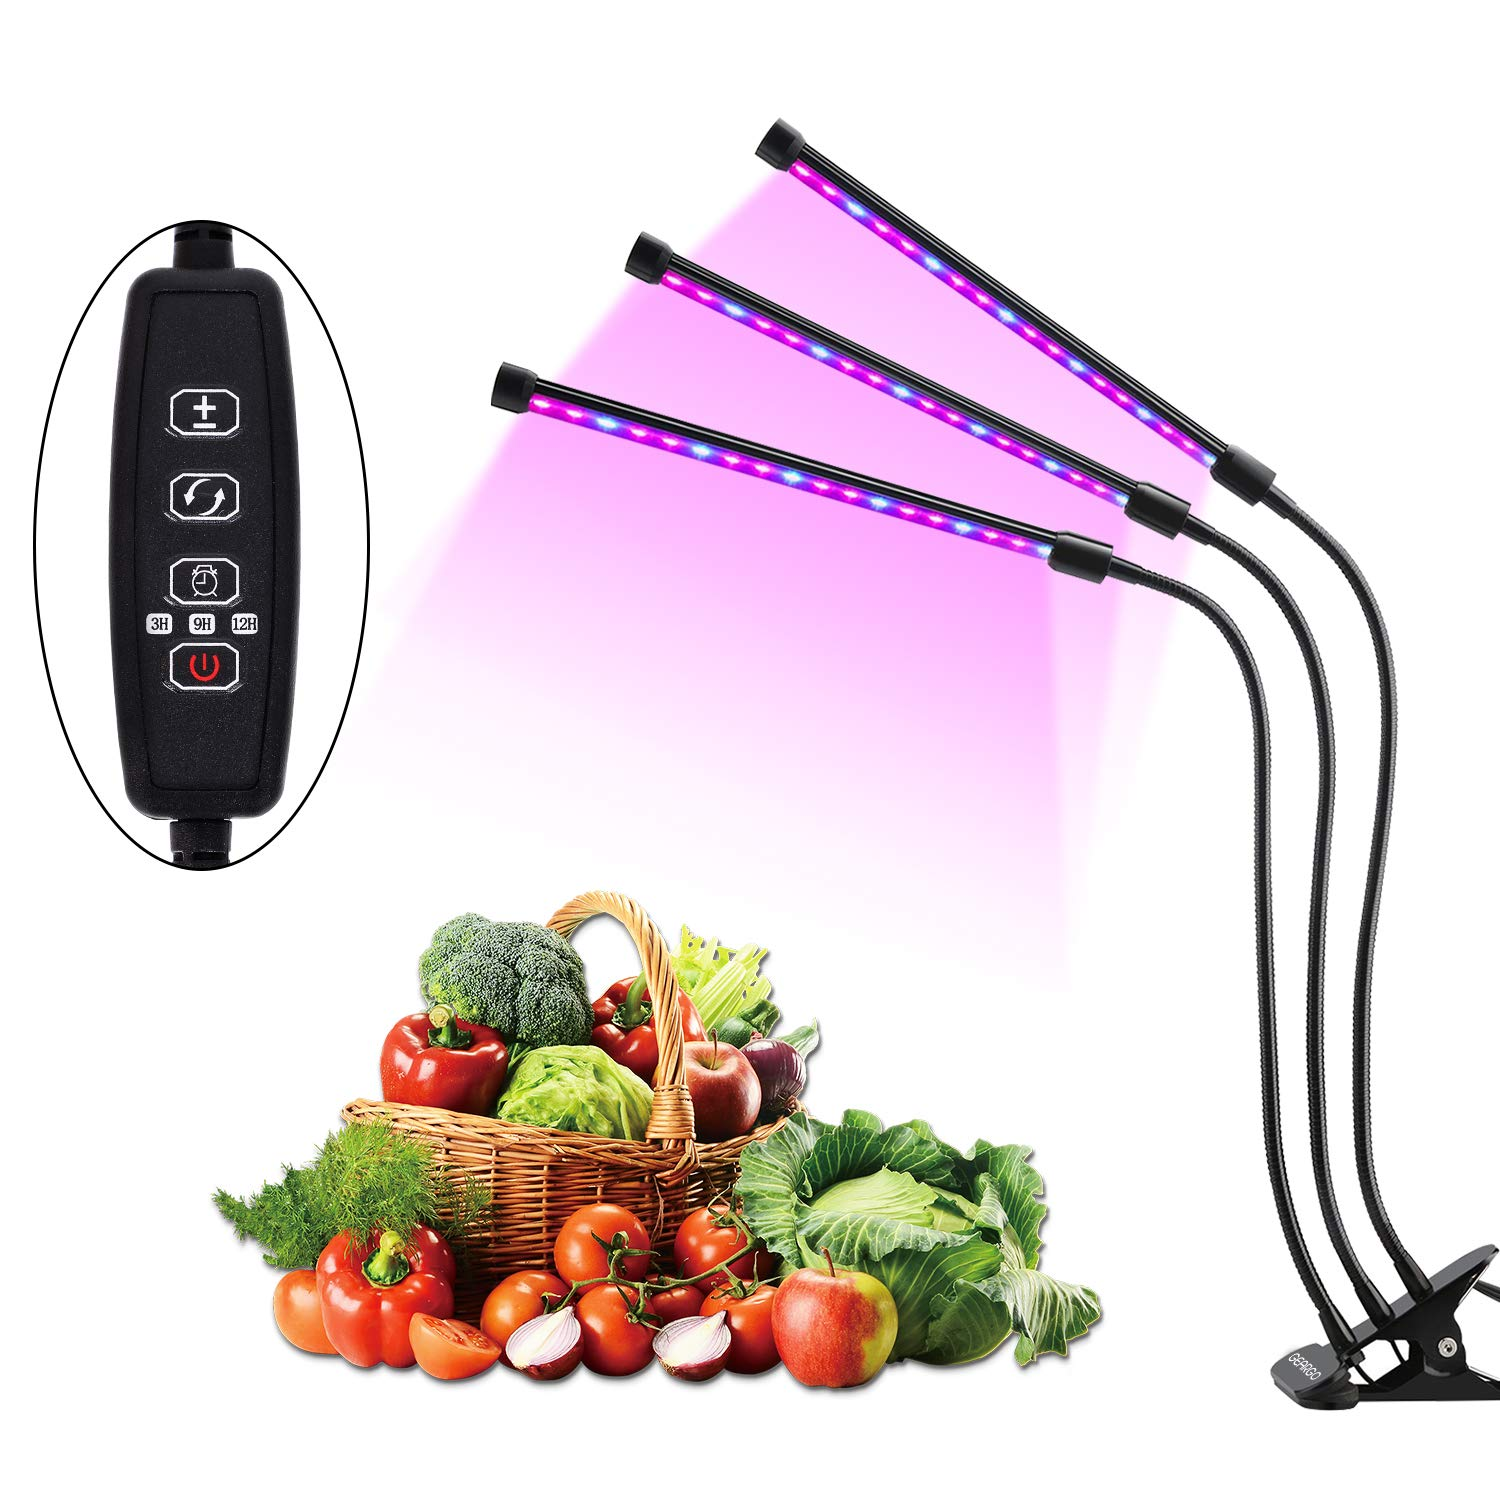 Led Grow Light, GEARGO 27W AUTO Turn ON/Off Plant Light, 3H/9H/12H Timers 54 LED Three Head 5 Dimmable Level 360 Degree Gooseneck Plant Light Bulbs for Indoor Plants Gardening [2018 Upgraded] by GEARGO